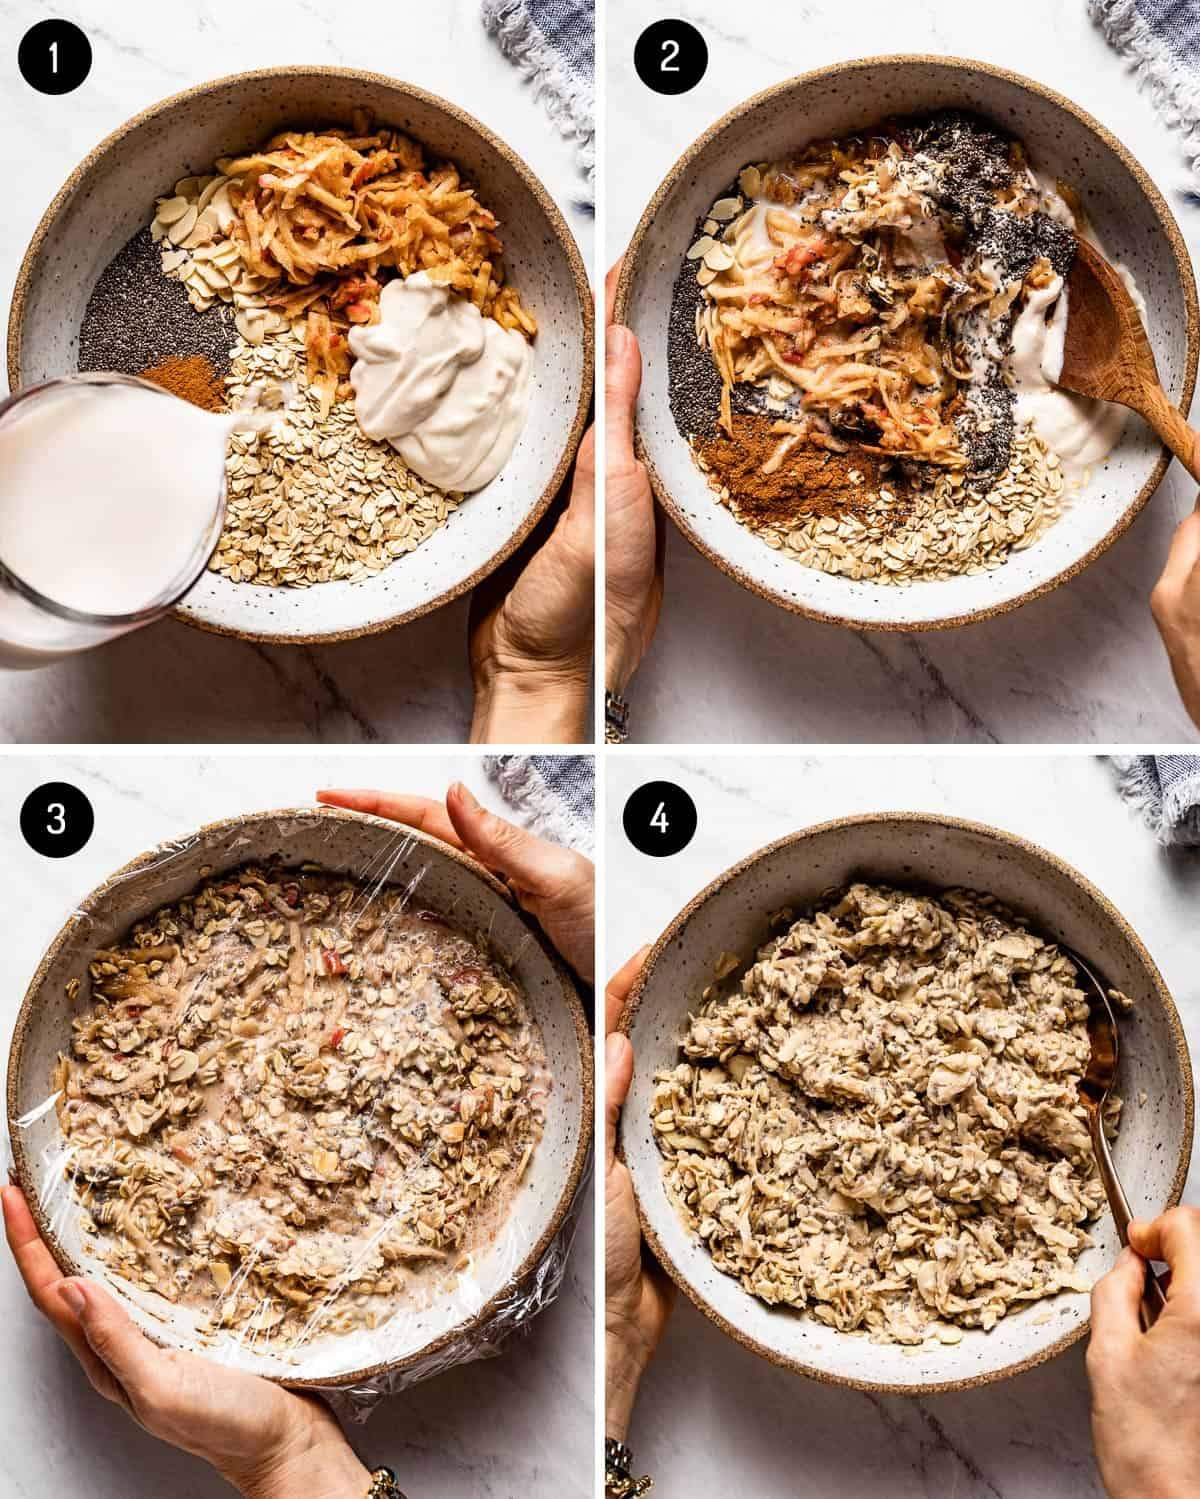 Steps showing how to make overnight muesli in four images